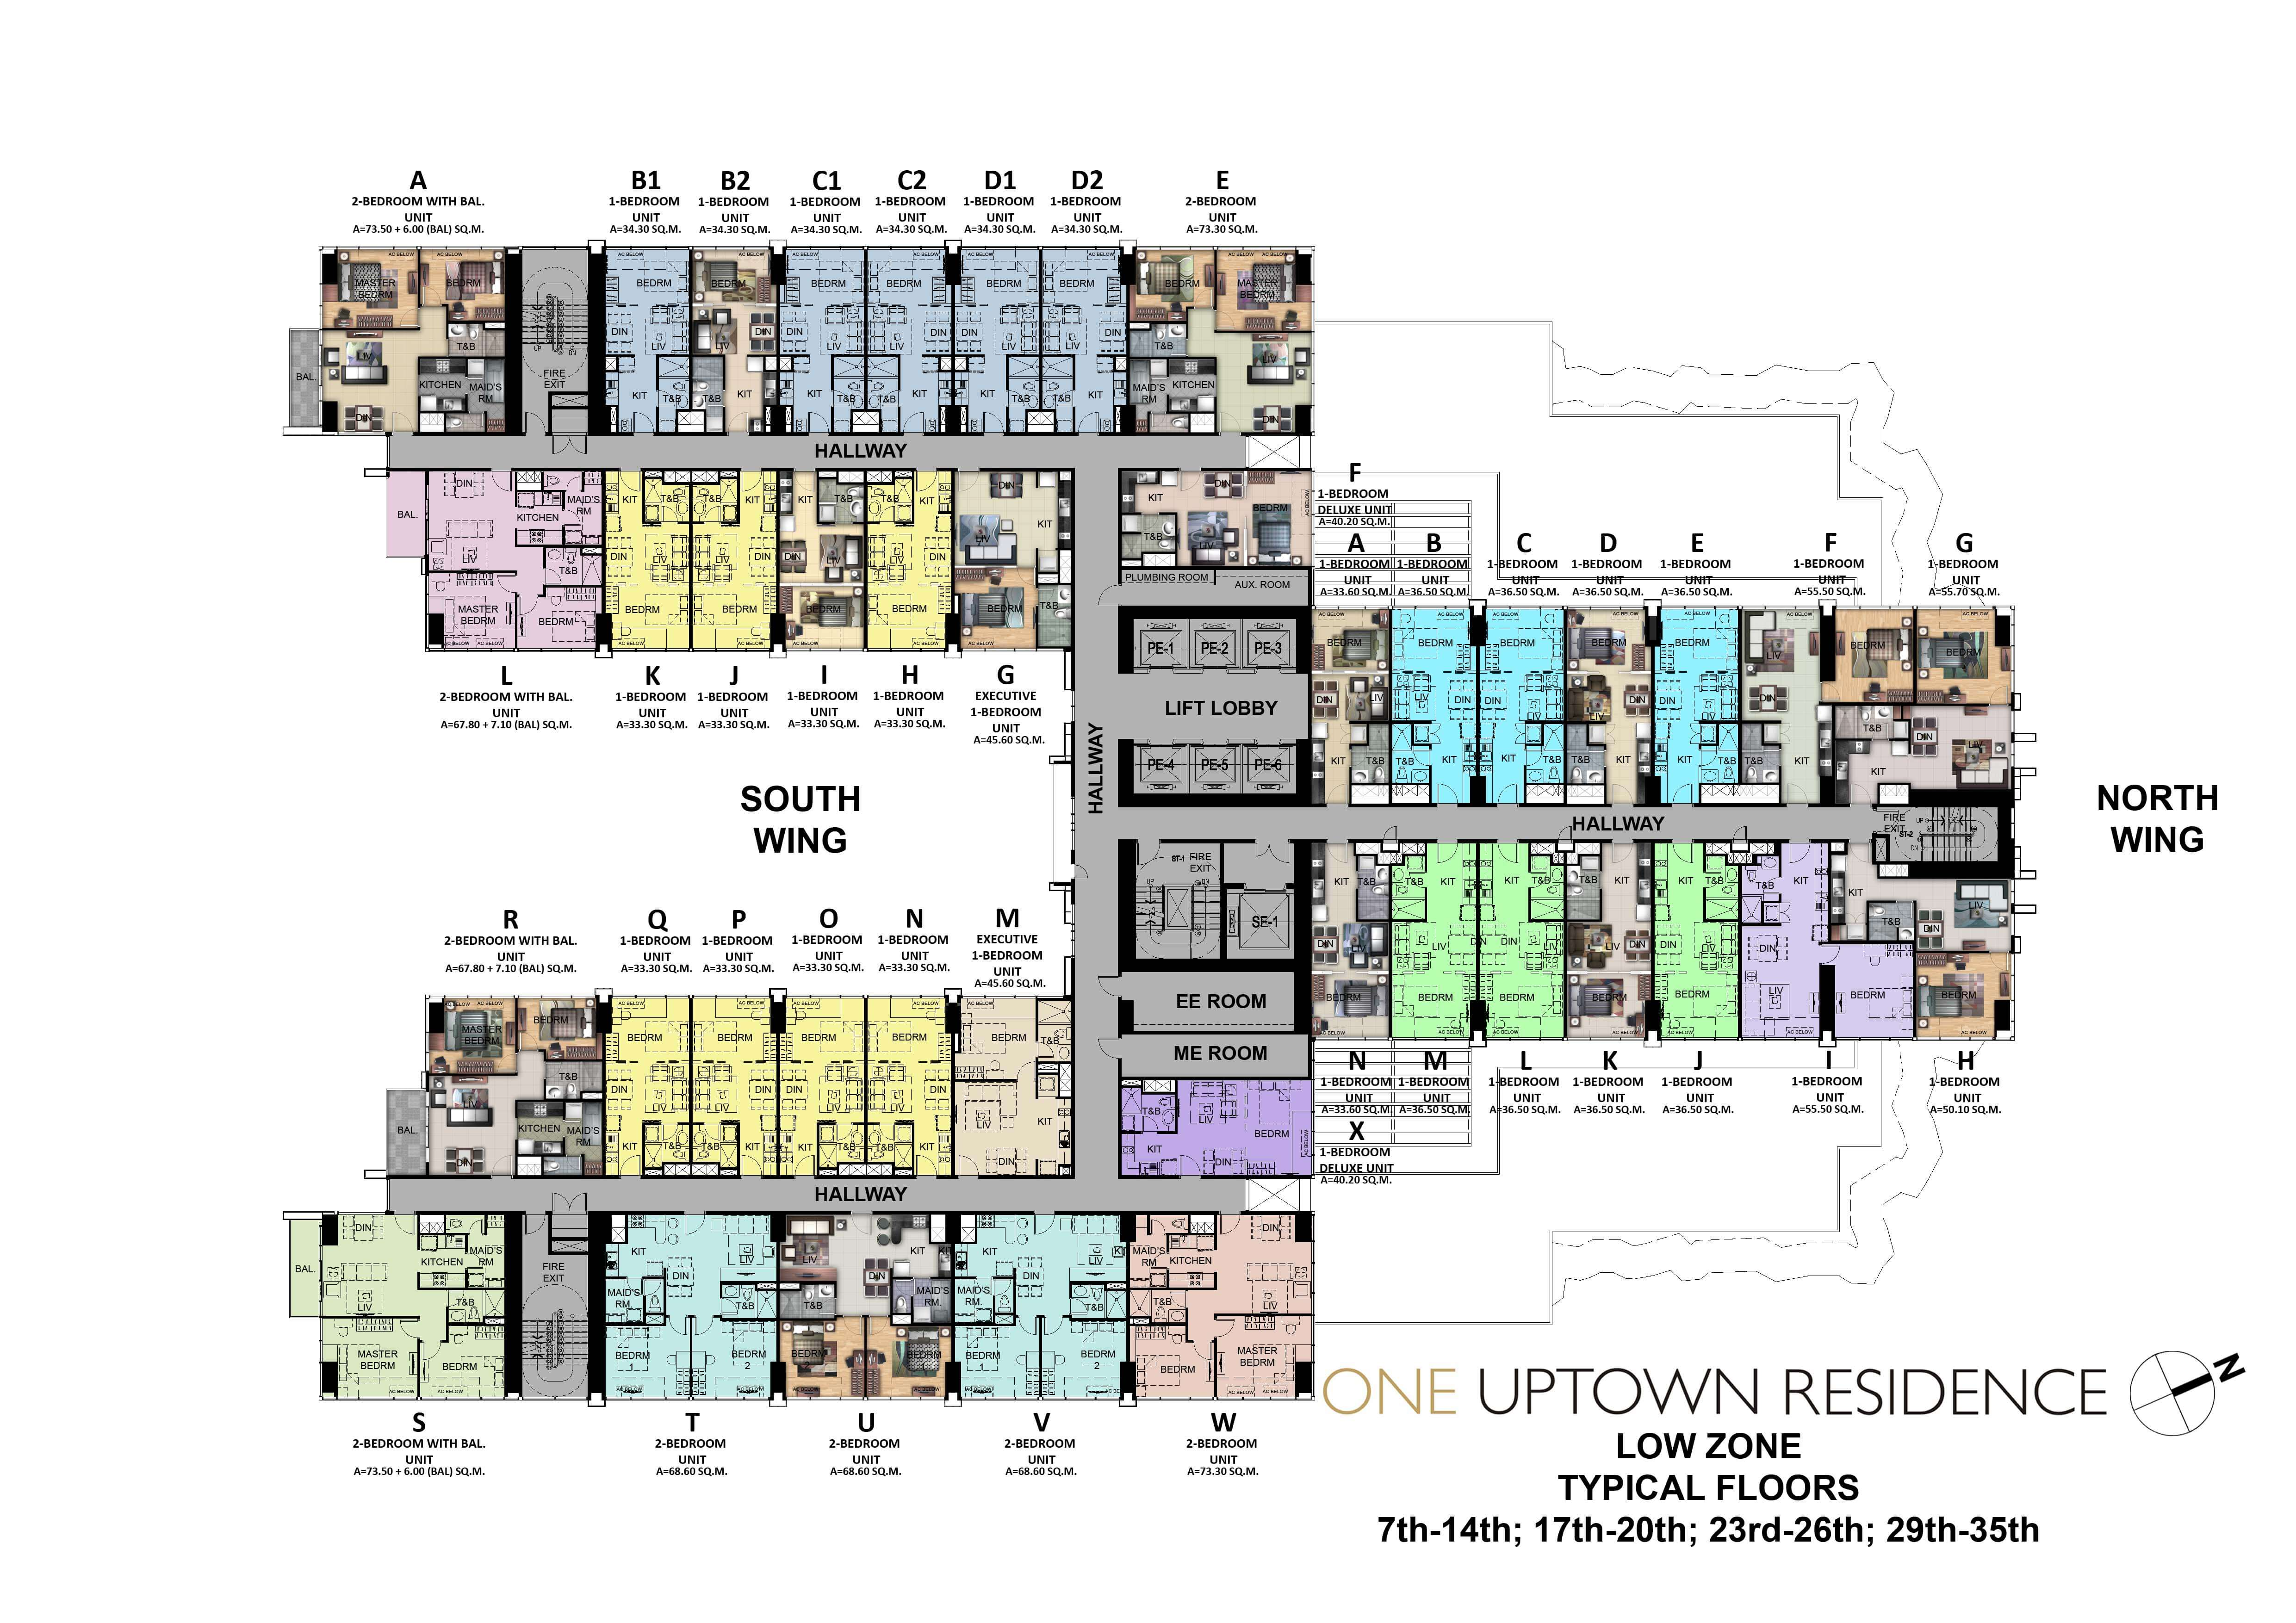 Polo Towers Floor Plan One Uptown Residence Most Prime Condominium In Global City